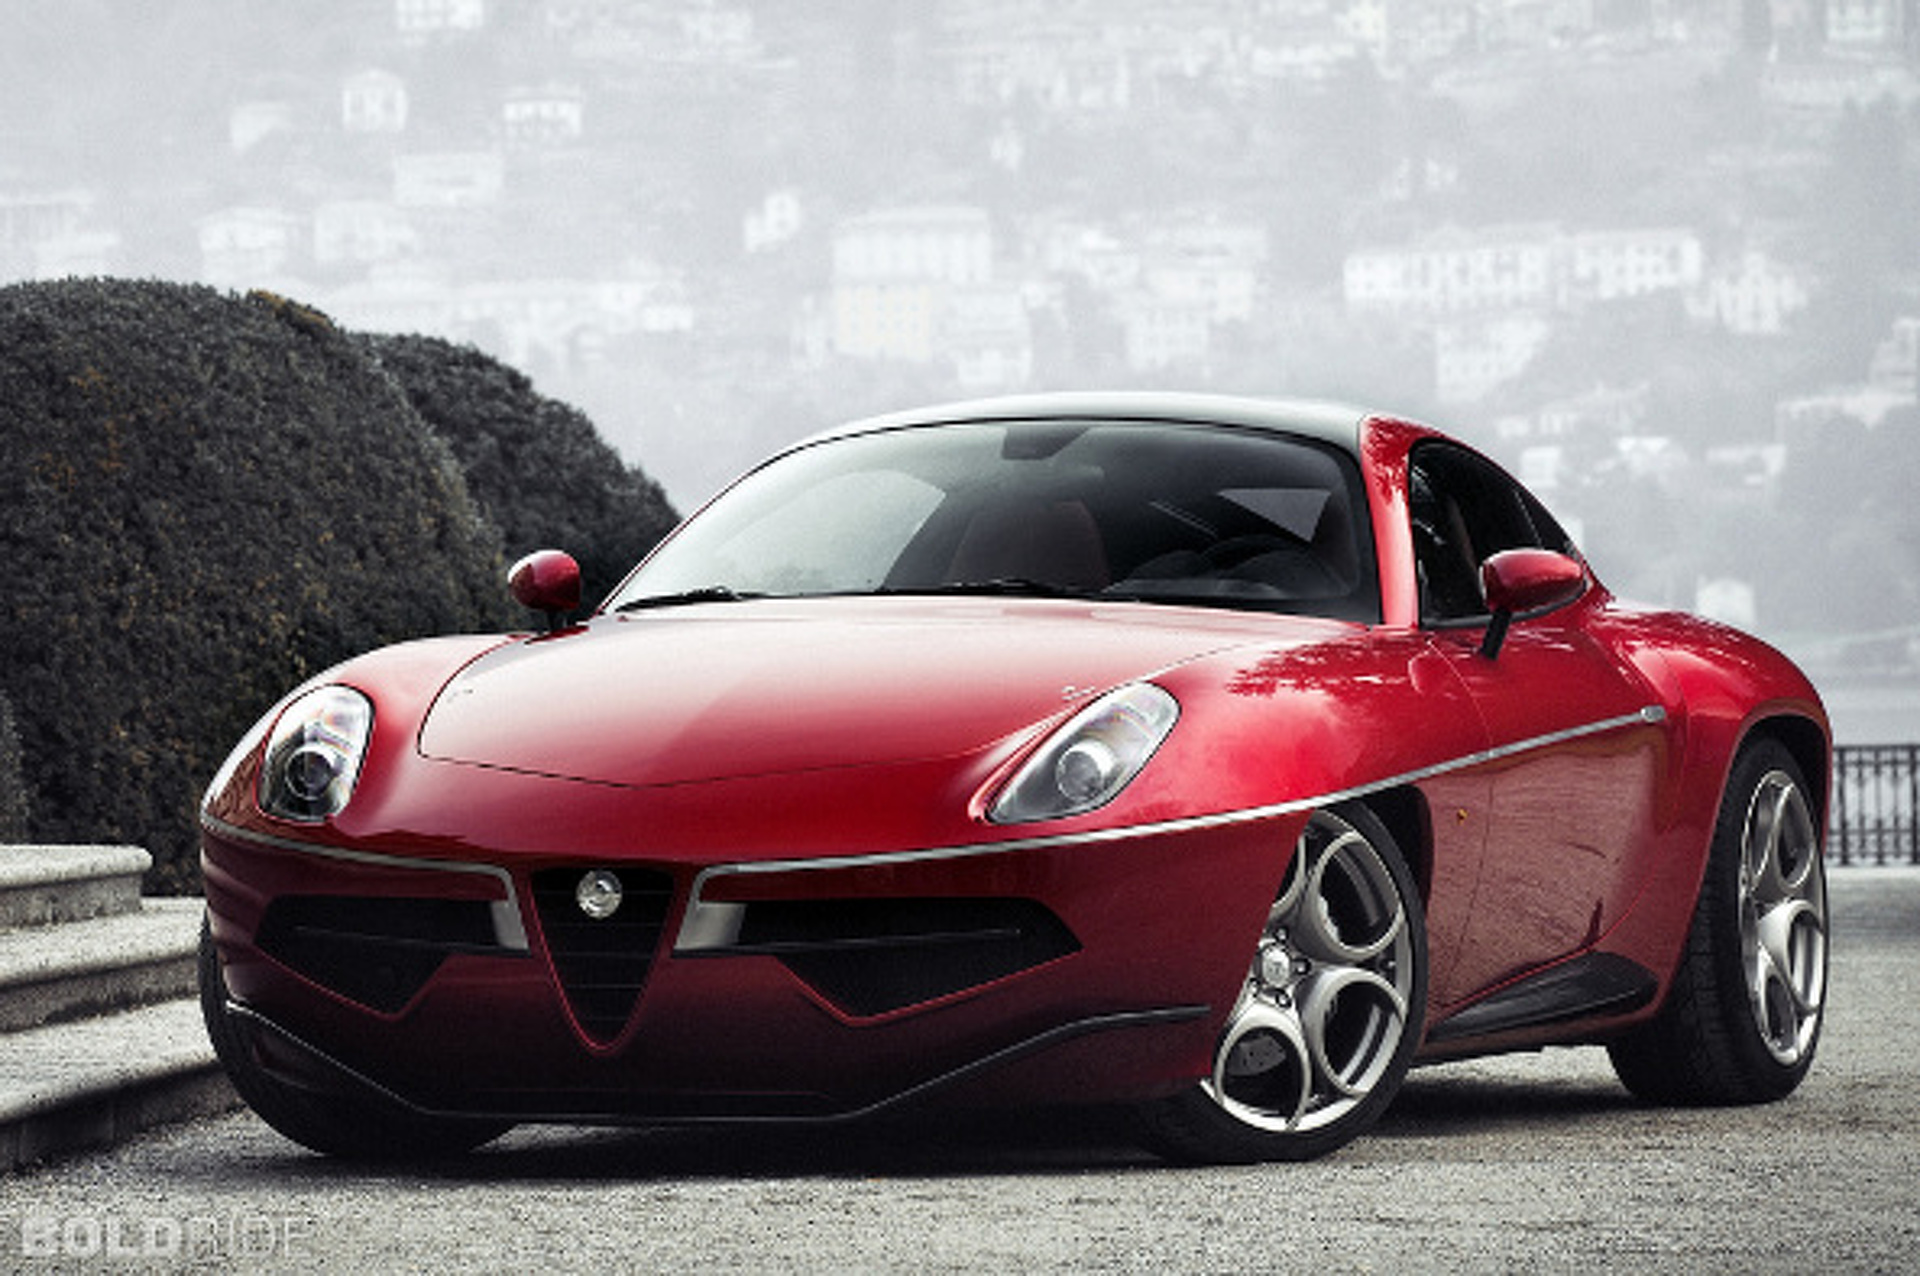 Disco Volante Concept is a Throwback with Modern DNA